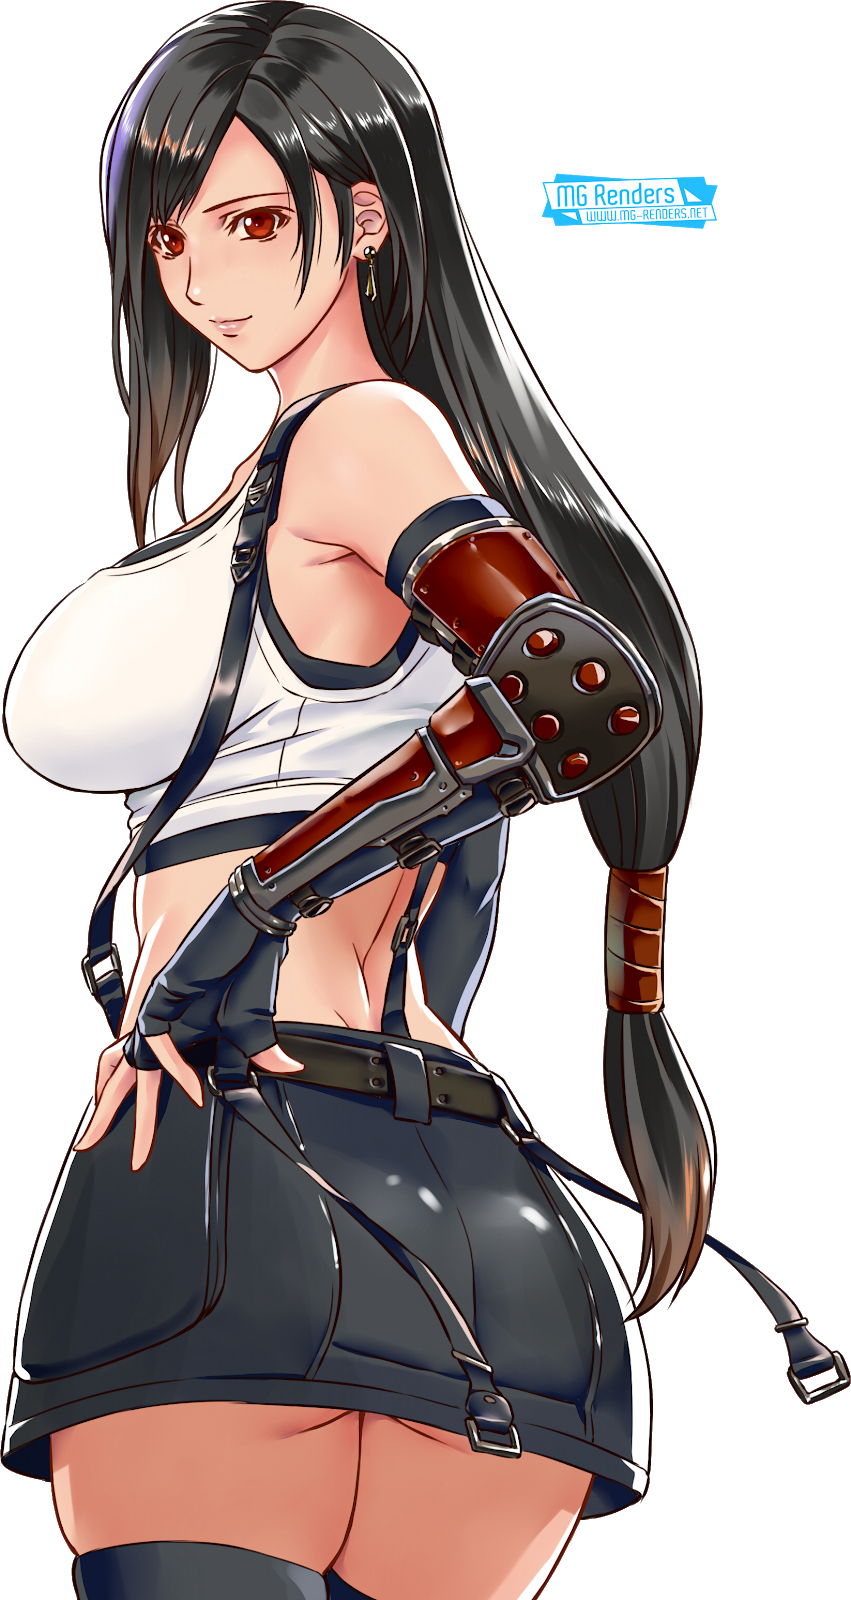 Tags: Anime, Render,  Bare shoulders,  Final Fantasy VII,  From behind,  Gloves,  Skirt,  Tifa Lockhart, PNG, Image, Picture